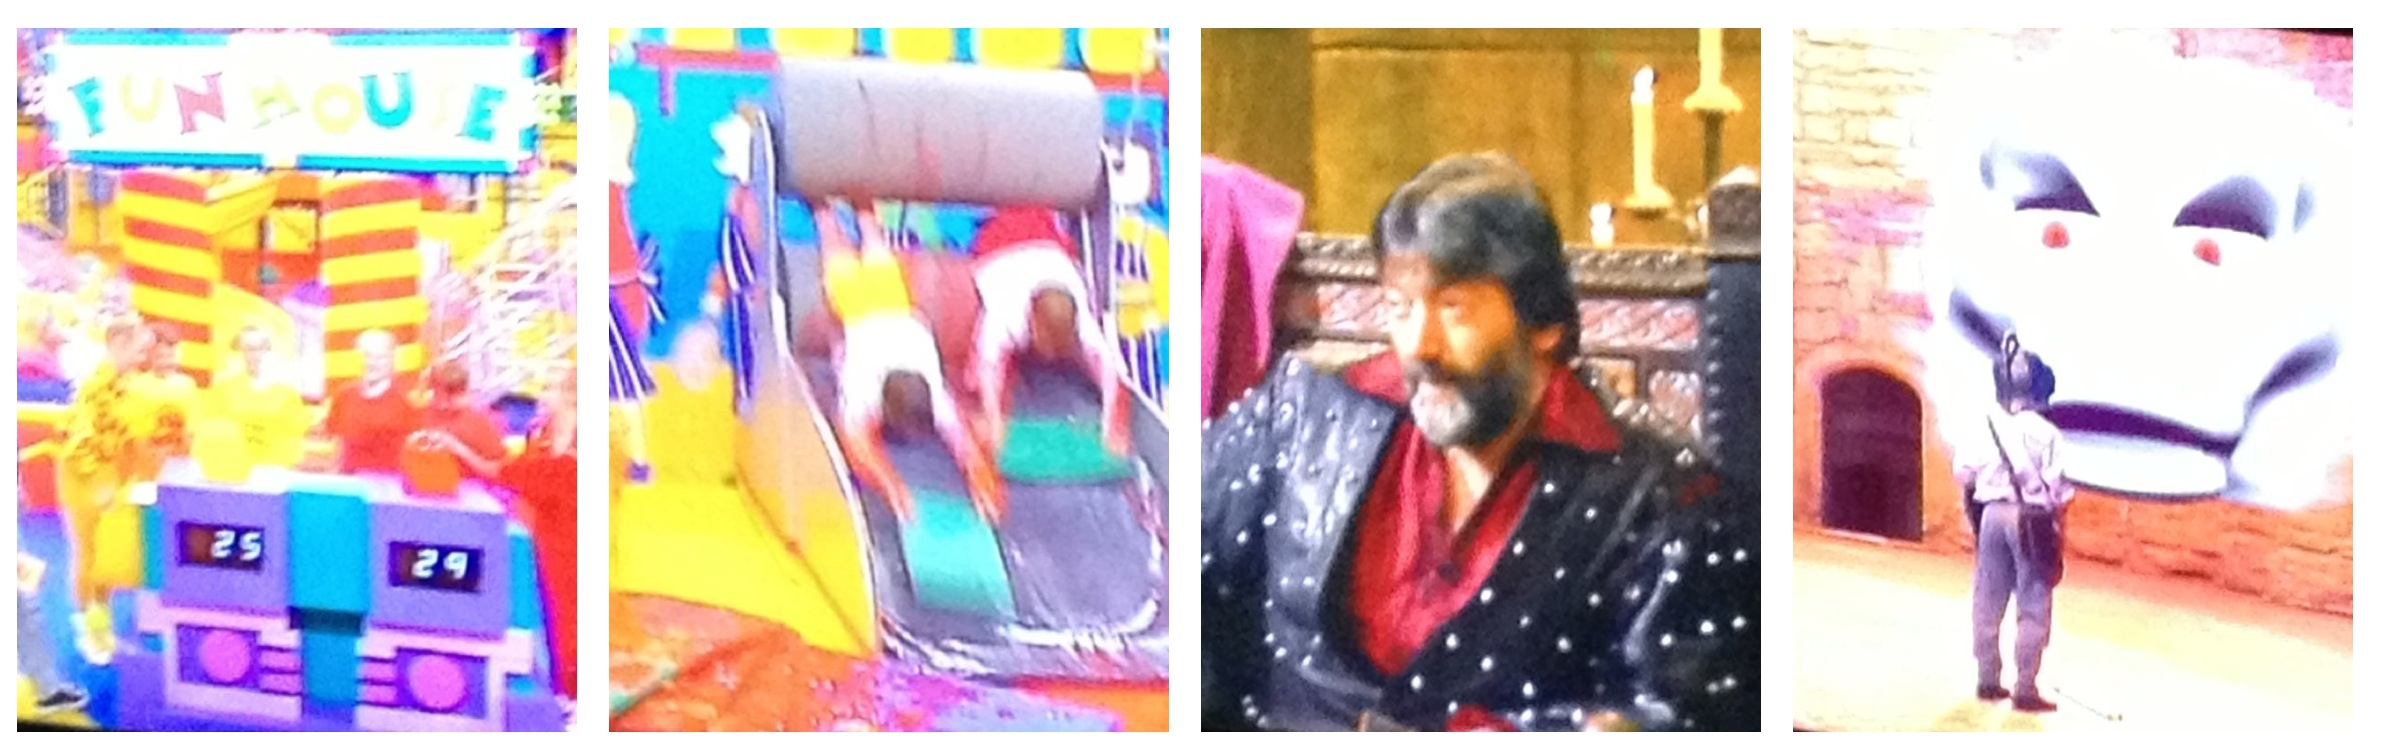 CITV's 'Old Skool' Weekend - Fun House and Knightmare